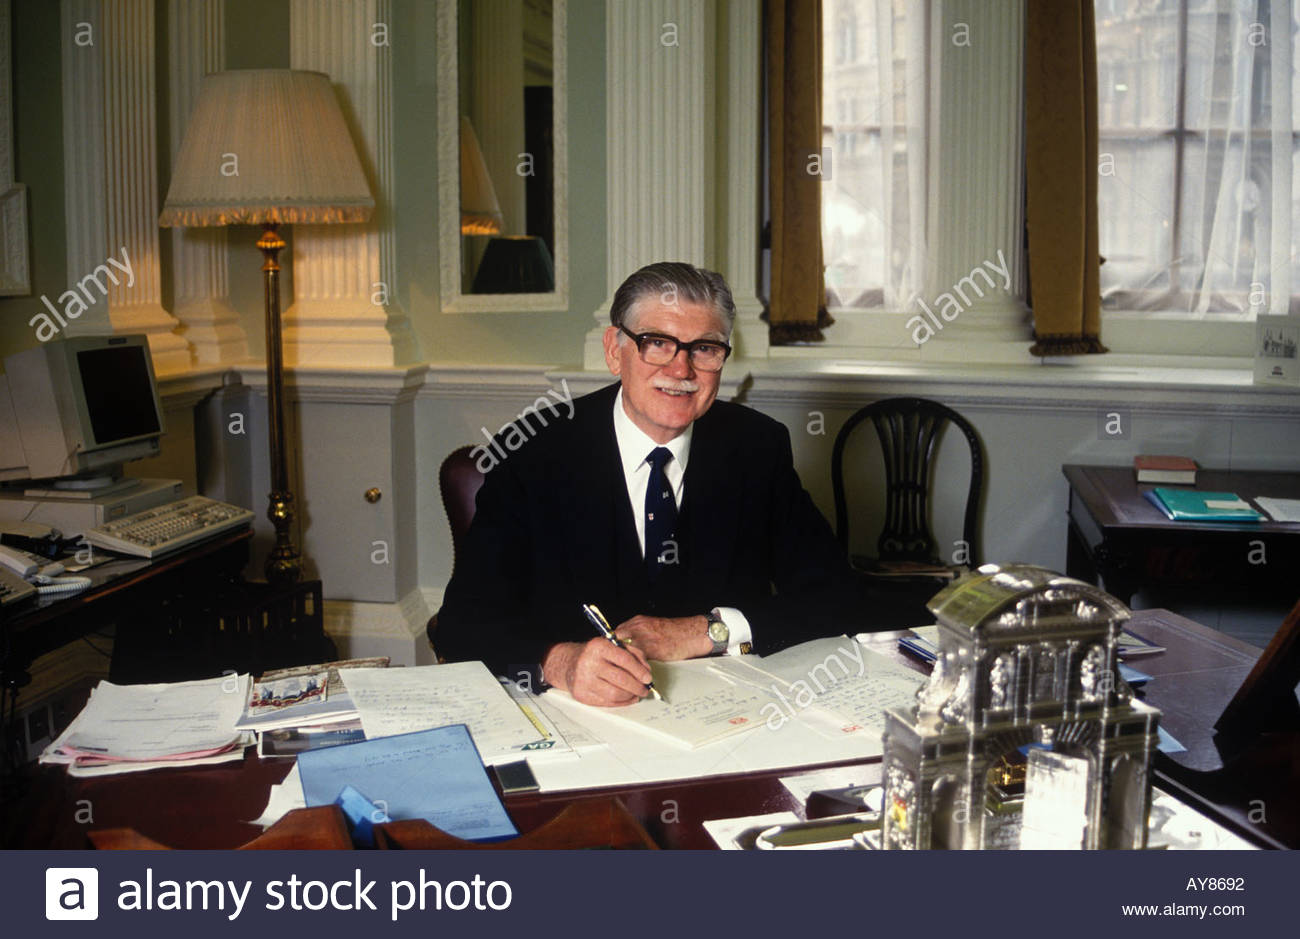 Sir Francis McWilliam Lord Mayor of London 1993 - Stock Image